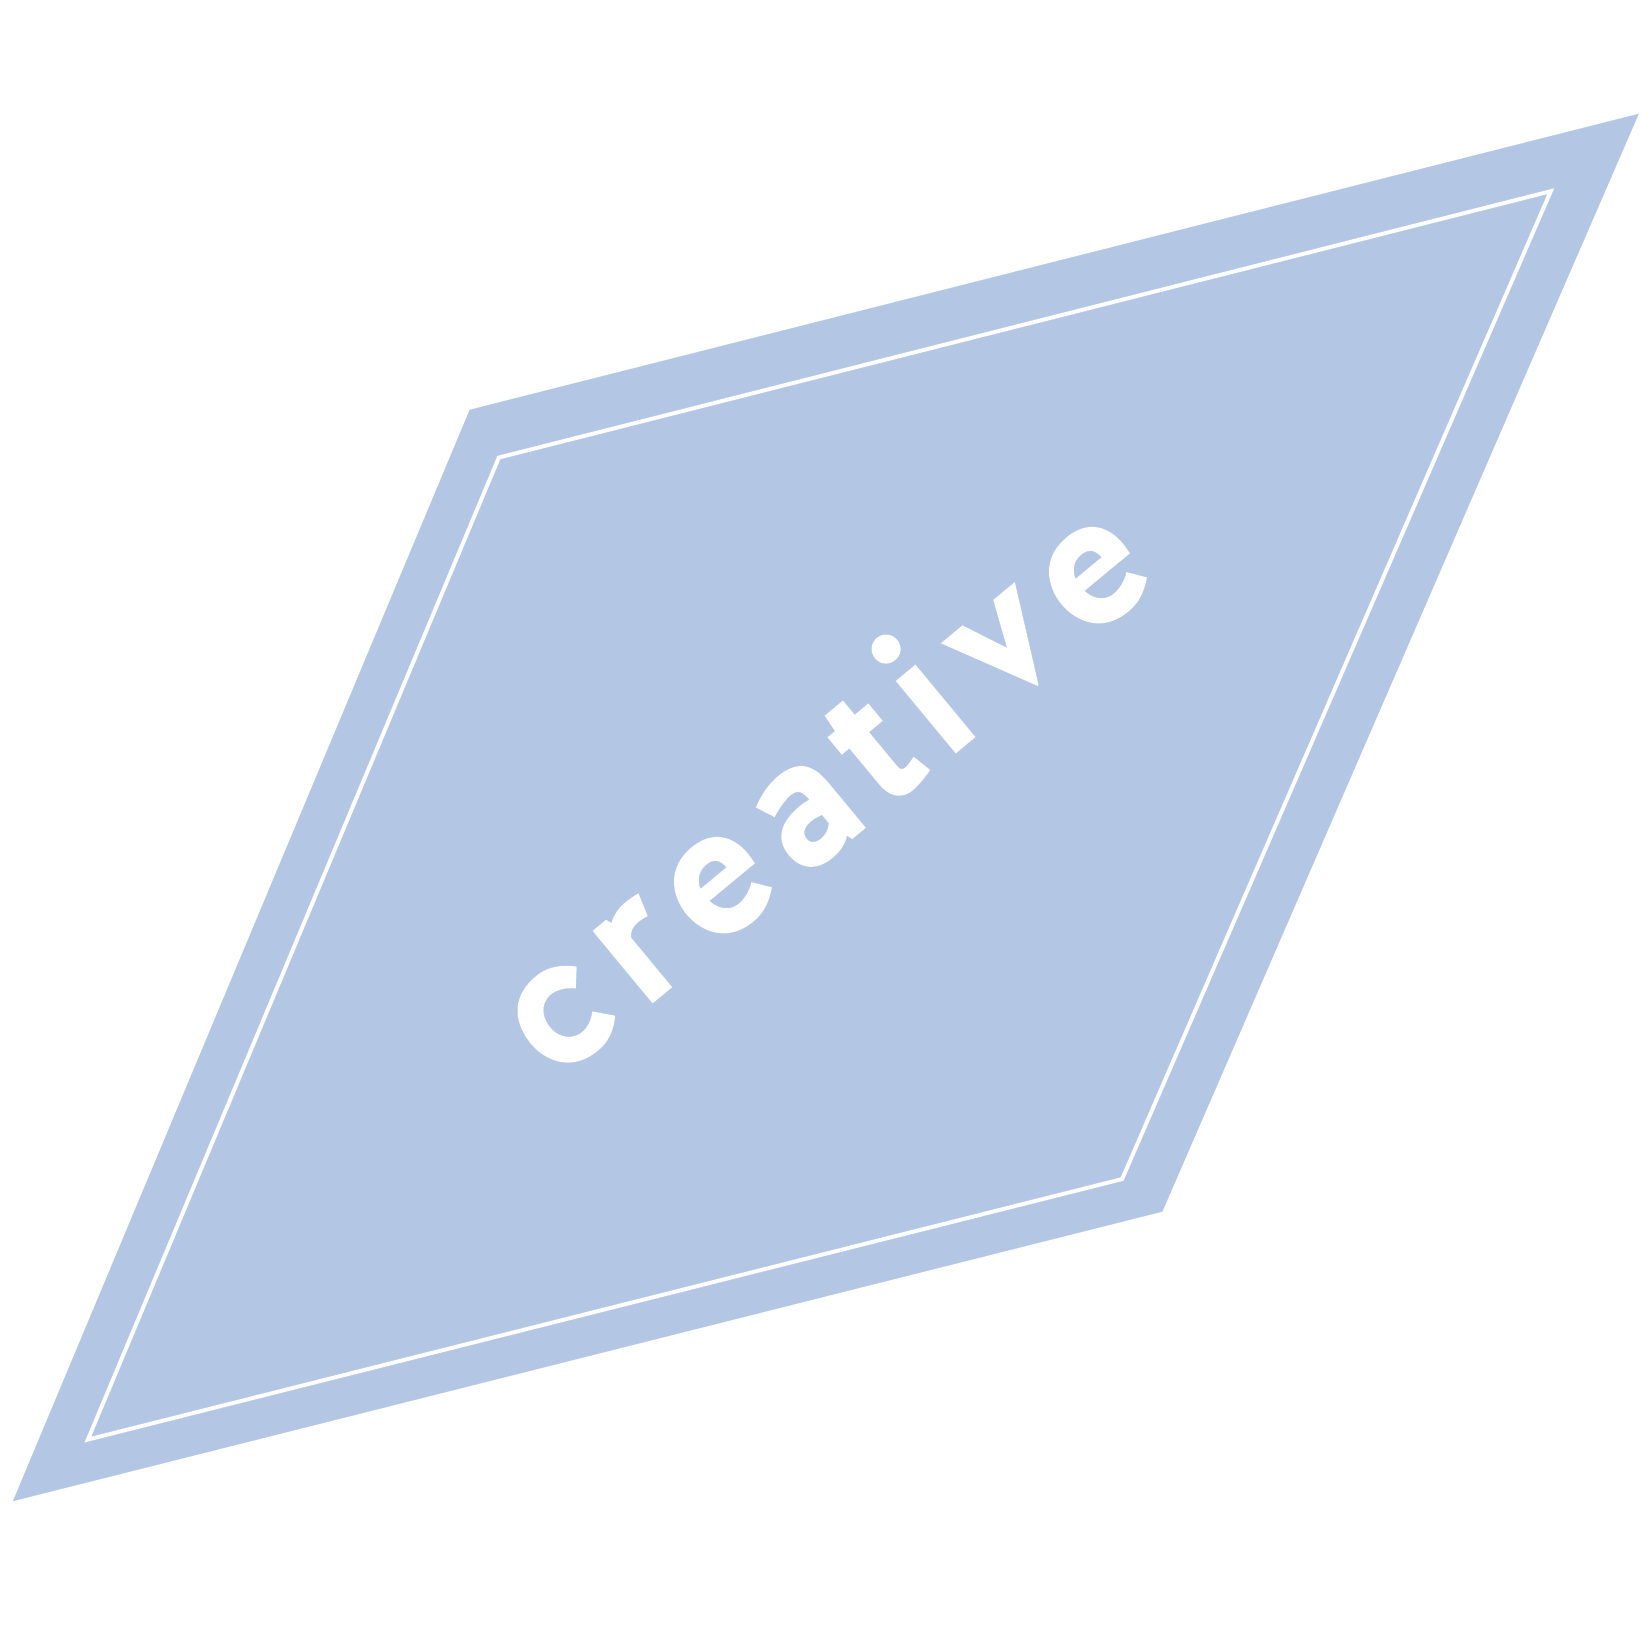 creative.png